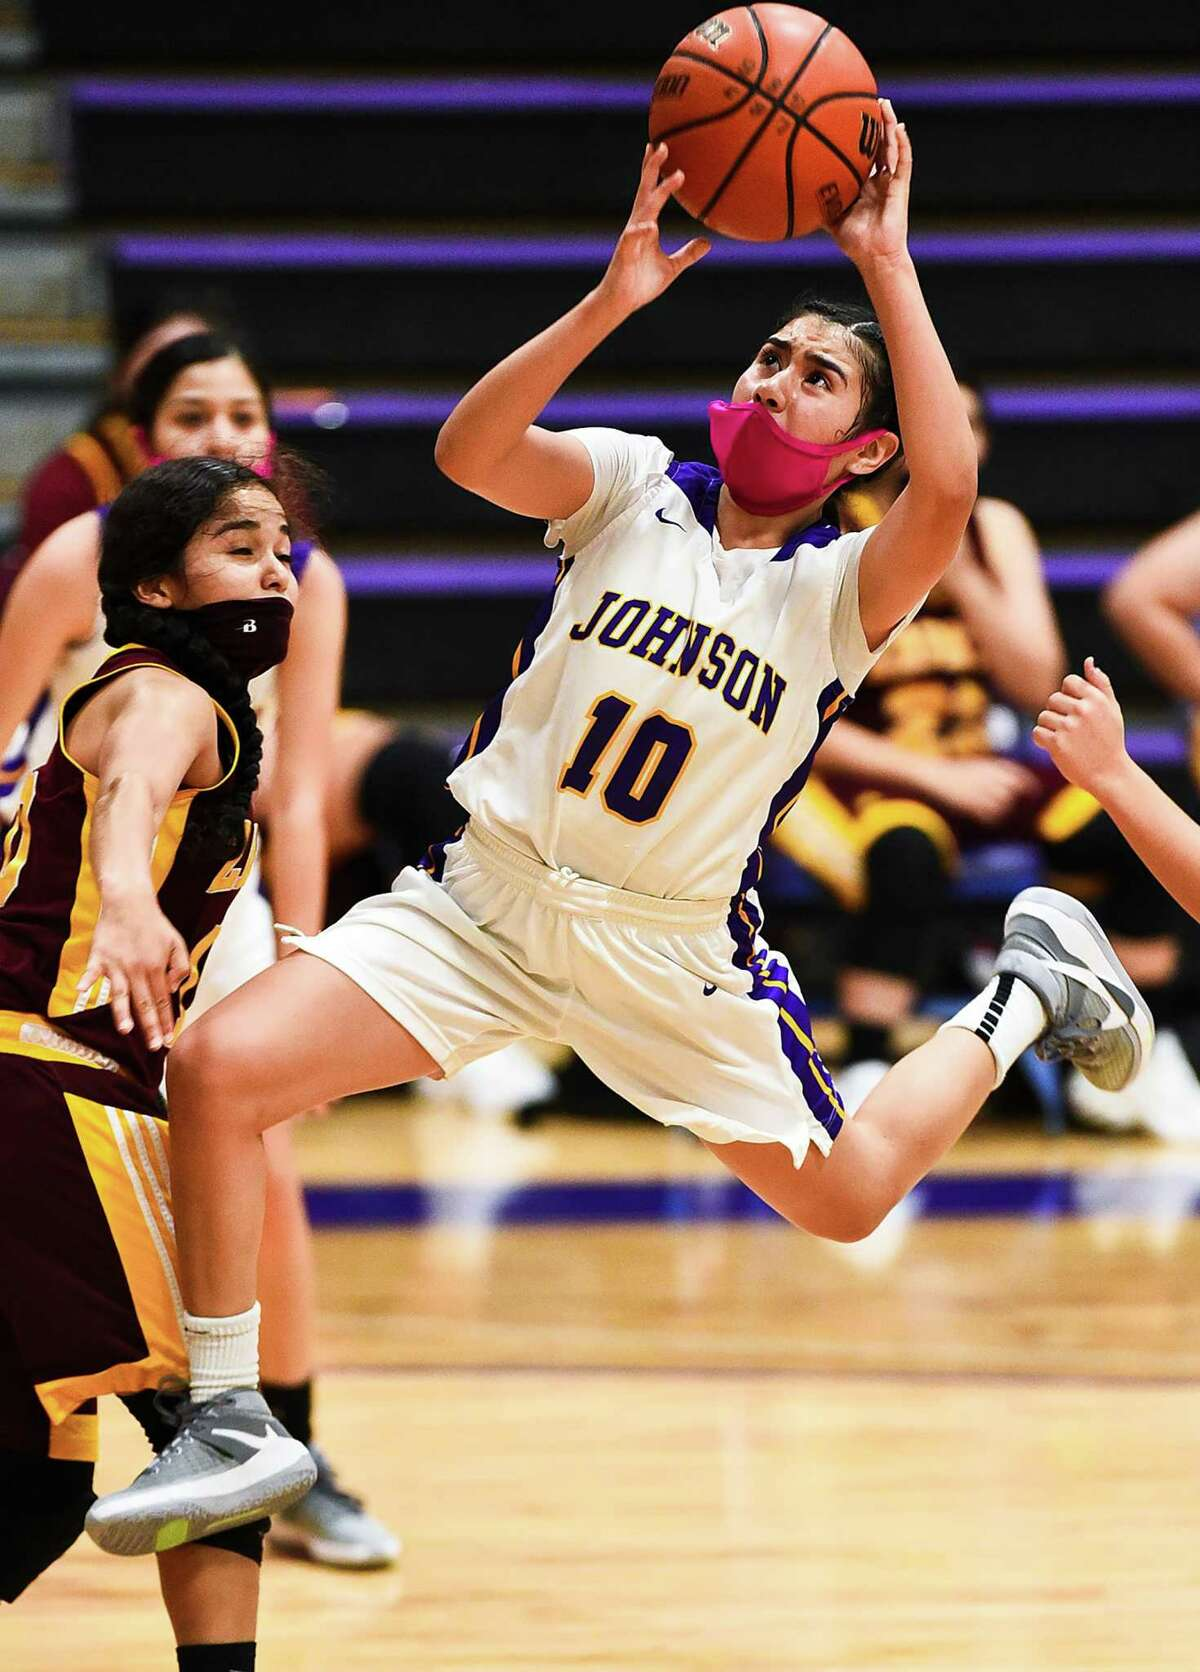 Amber Castillo and LBJ got back to a winning record improving to 3-2 with Tuesday's 46-18 victory over Zapata.